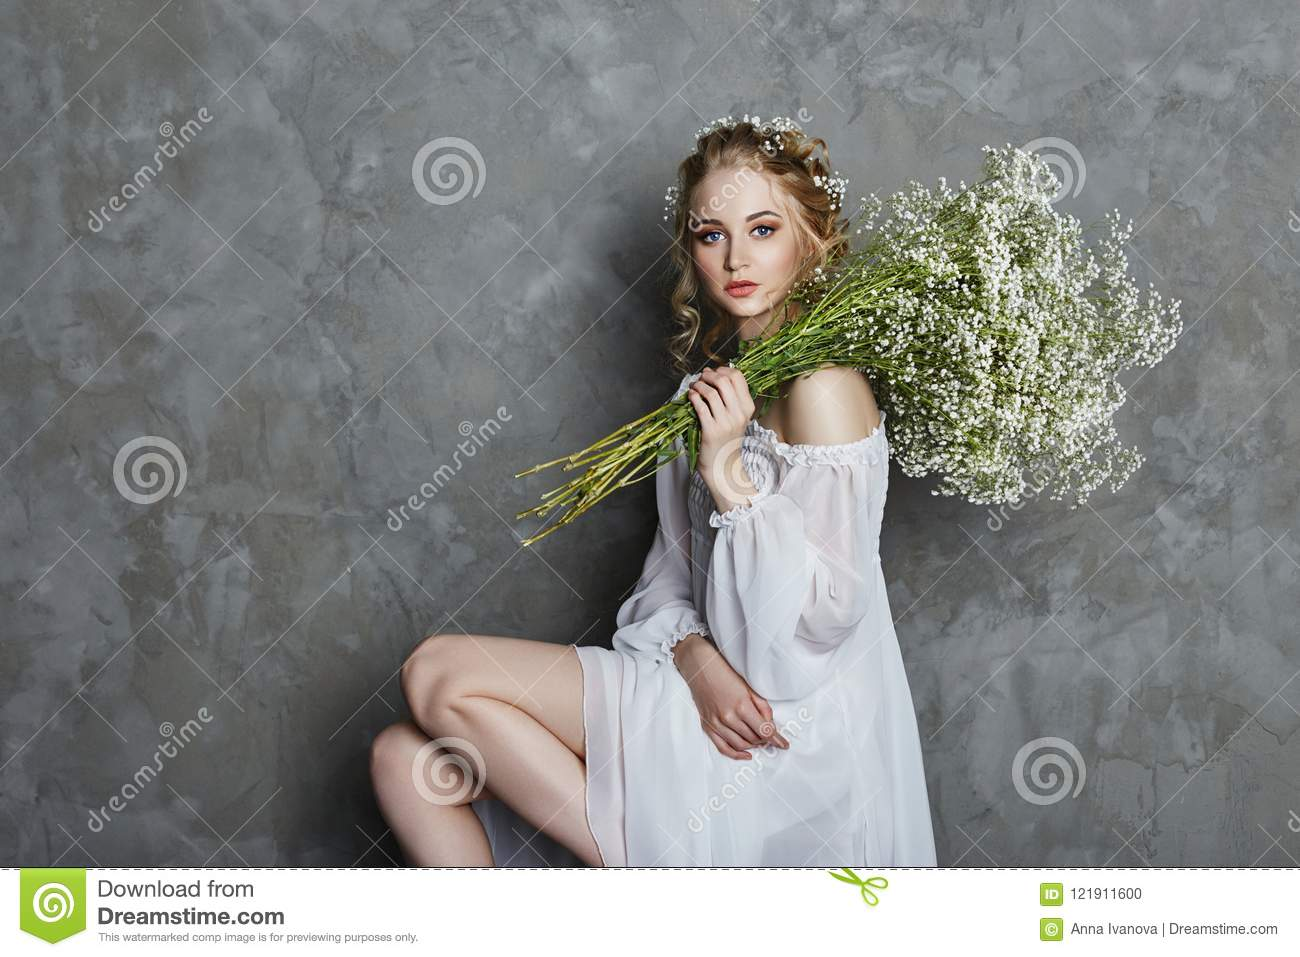 Girl white light dress and curly hair, portrait of woman with flowers at home near the window, purity and innocence. Curly blonde